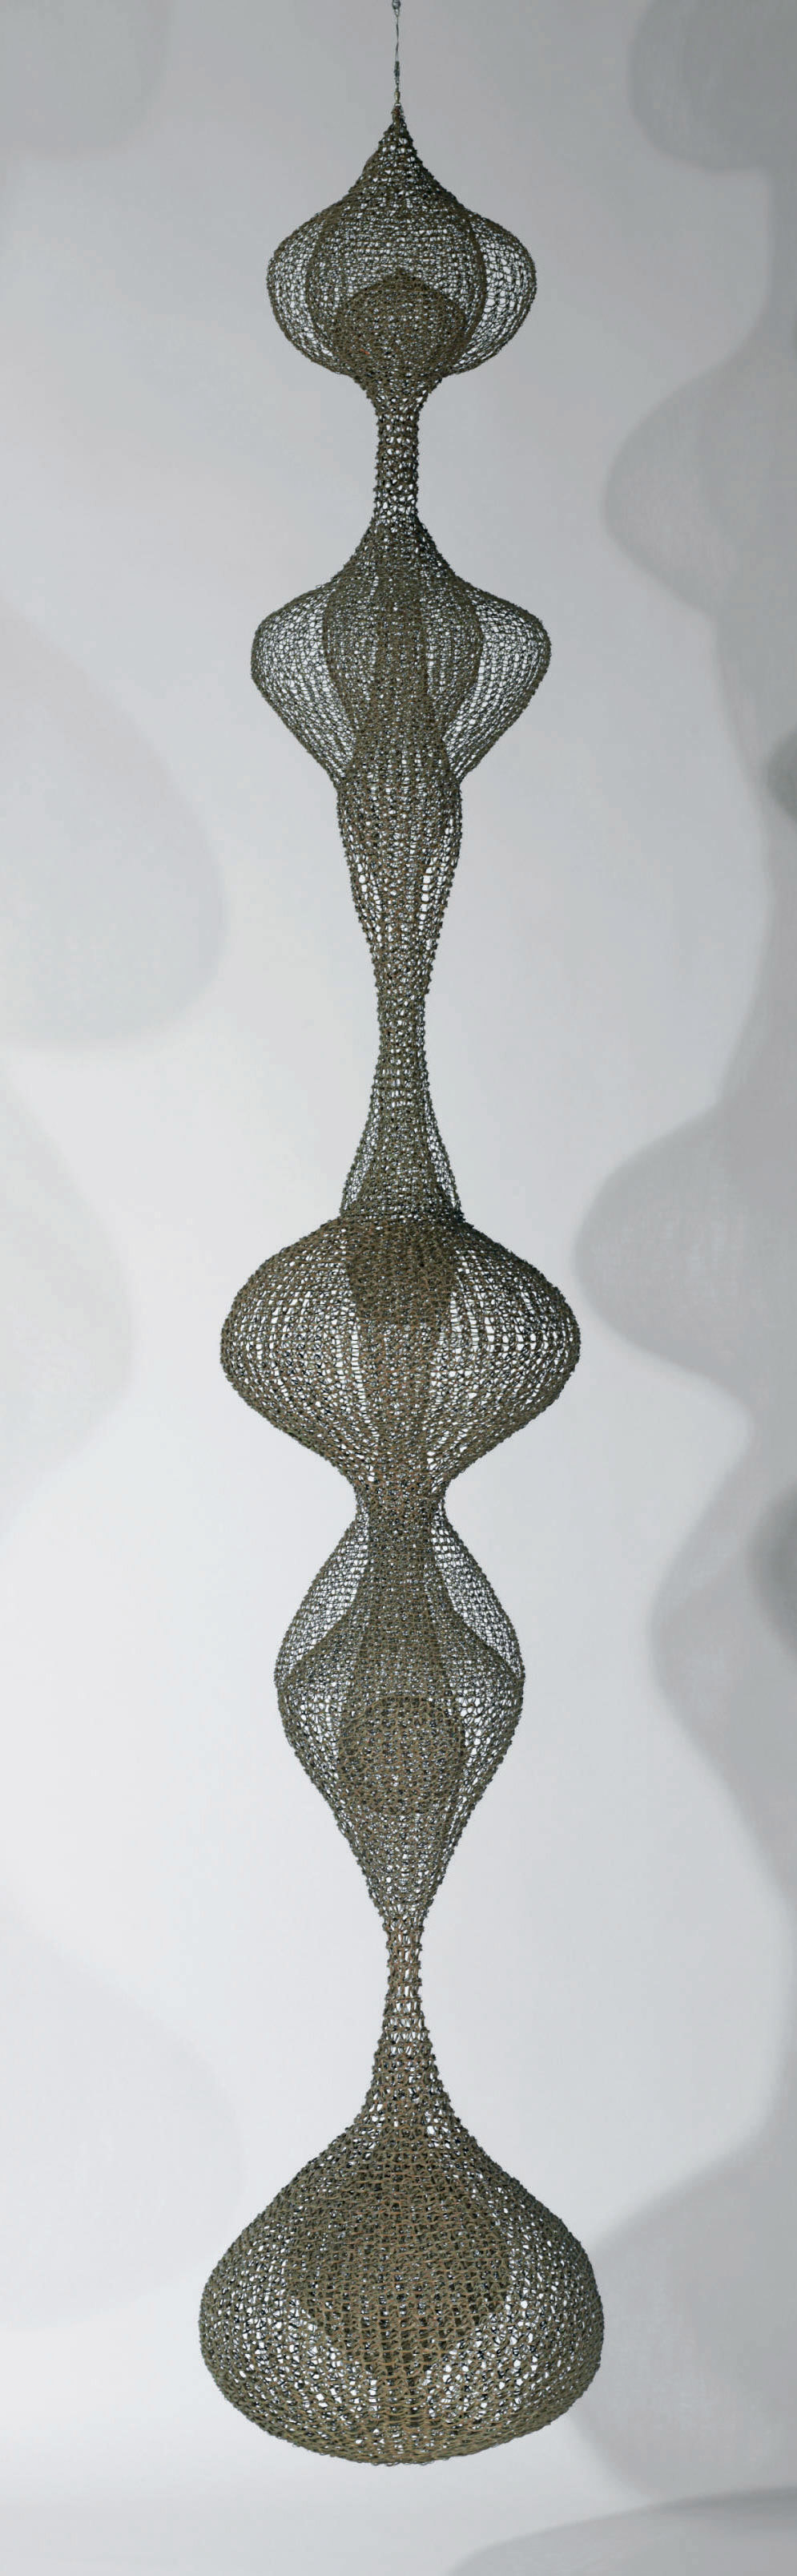 Untitled (Hanging Six-Lobed, Multi-Layered Continuous Form within a Form)